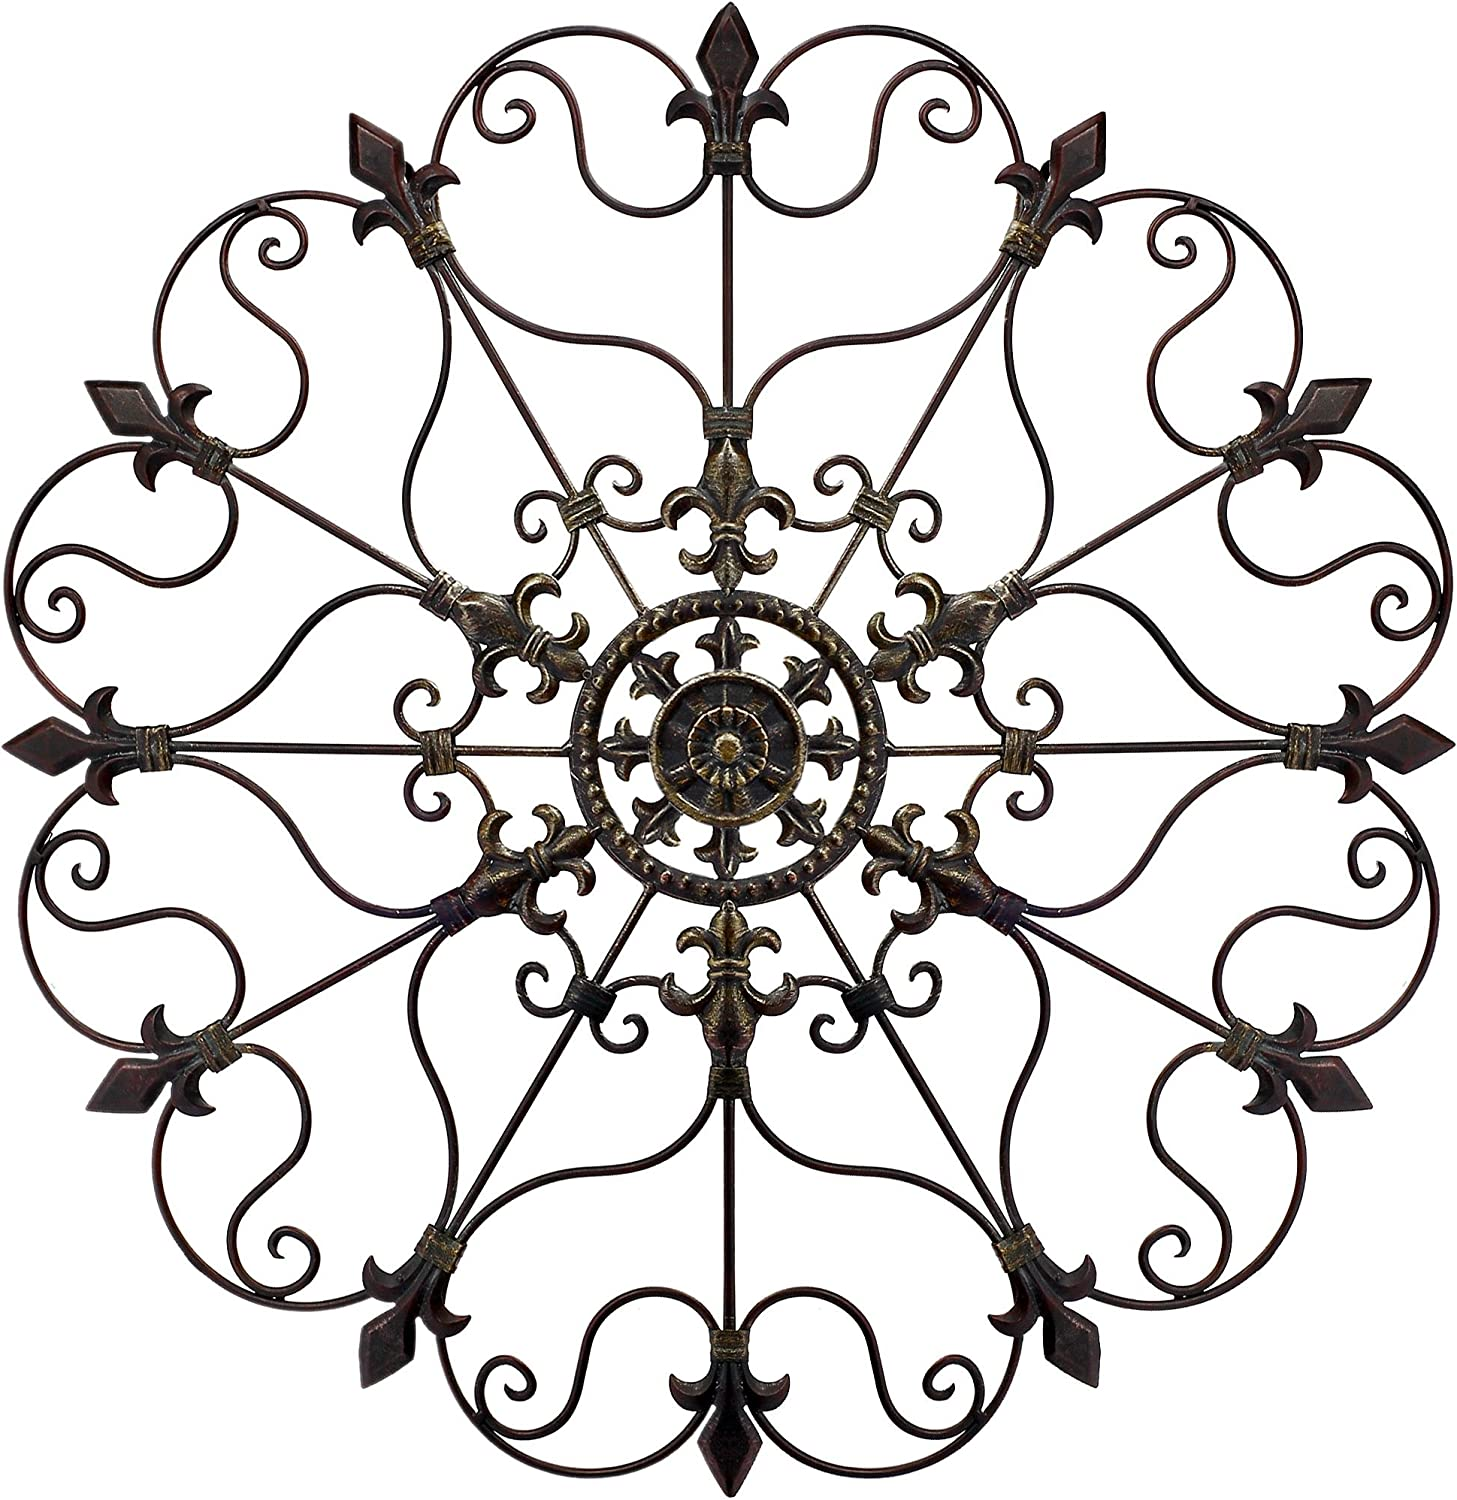 Yun&Lin Crafts YL Crafts - Metal Mounted Medallion Hand-painted Wall Decor 28 x28 , Large Metal Home Wall Art for Indoor and Outdoor Settings